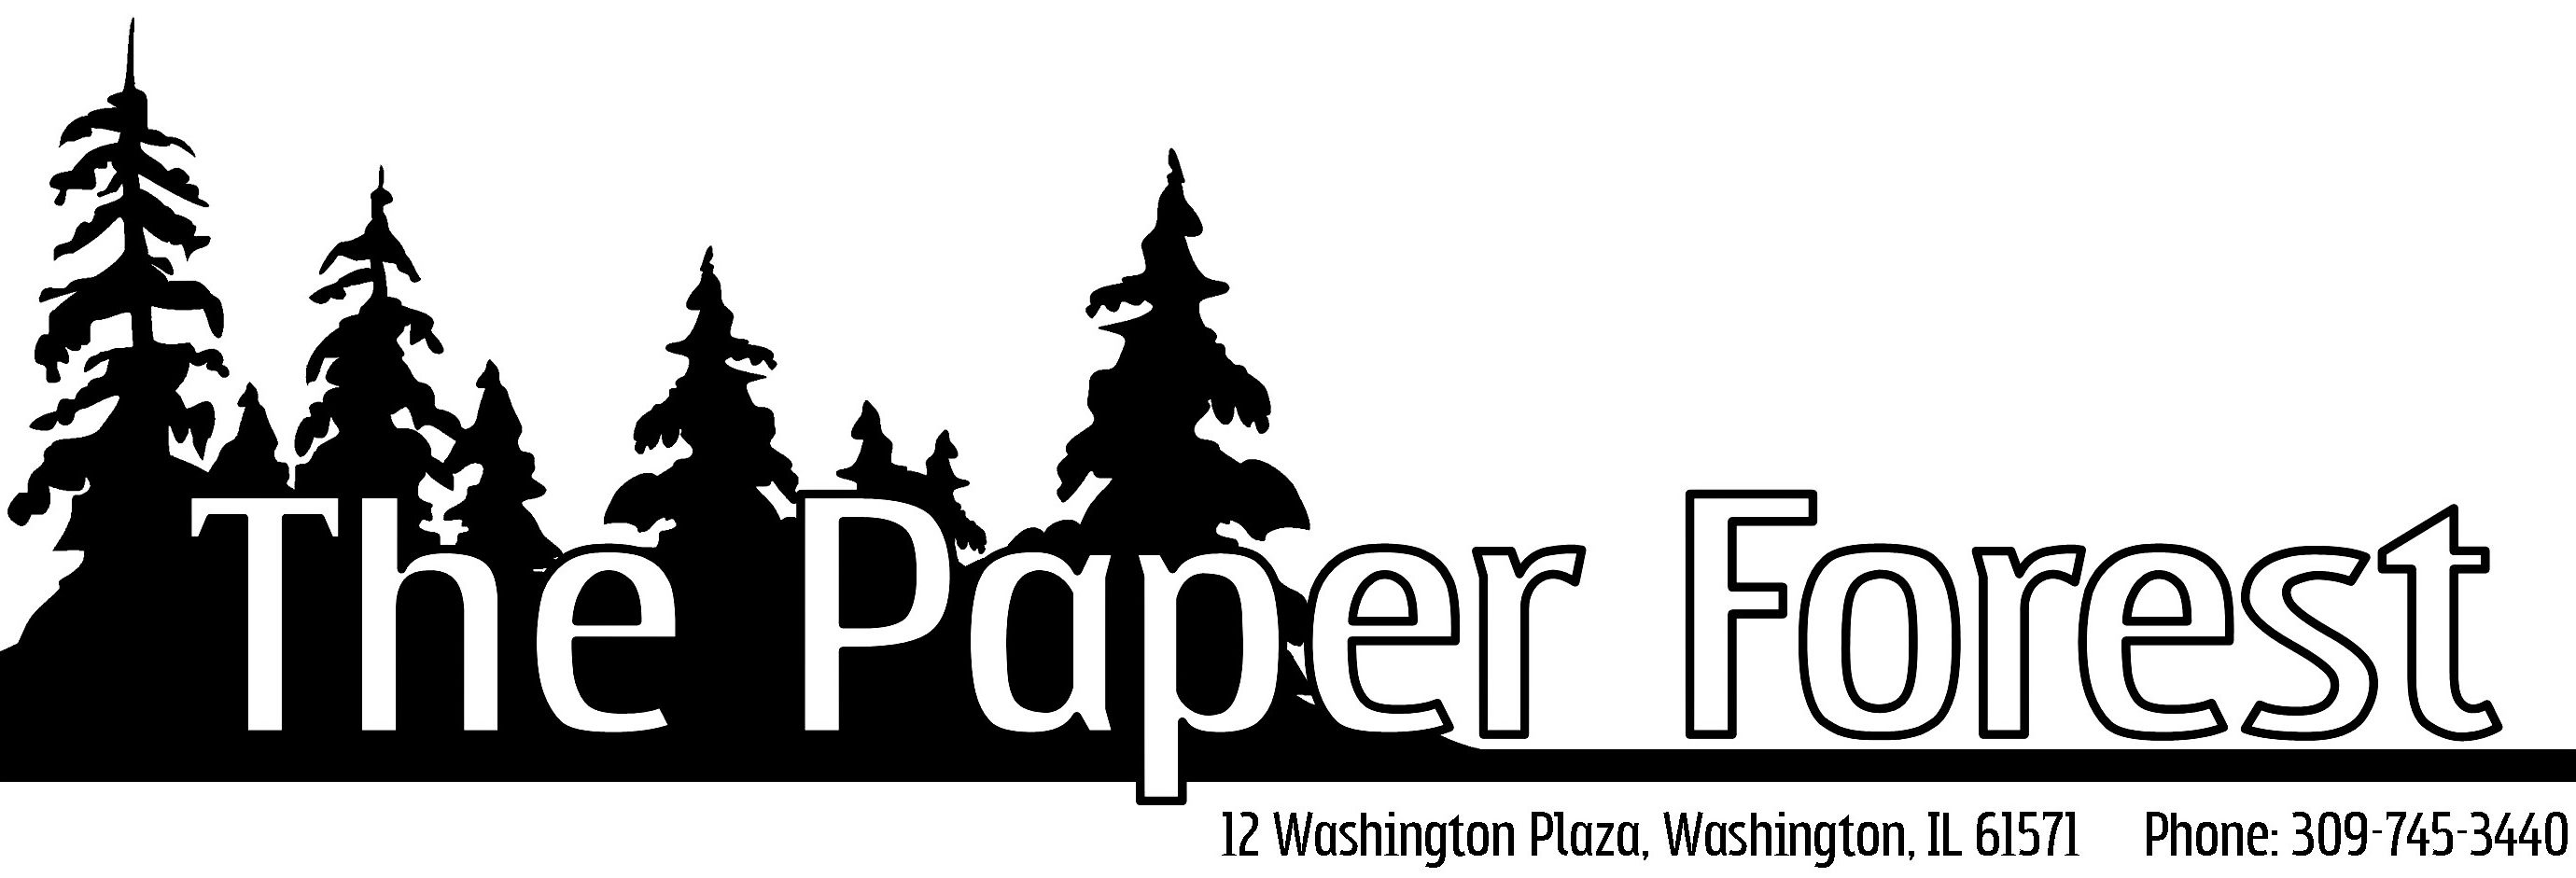 The Paper Forest